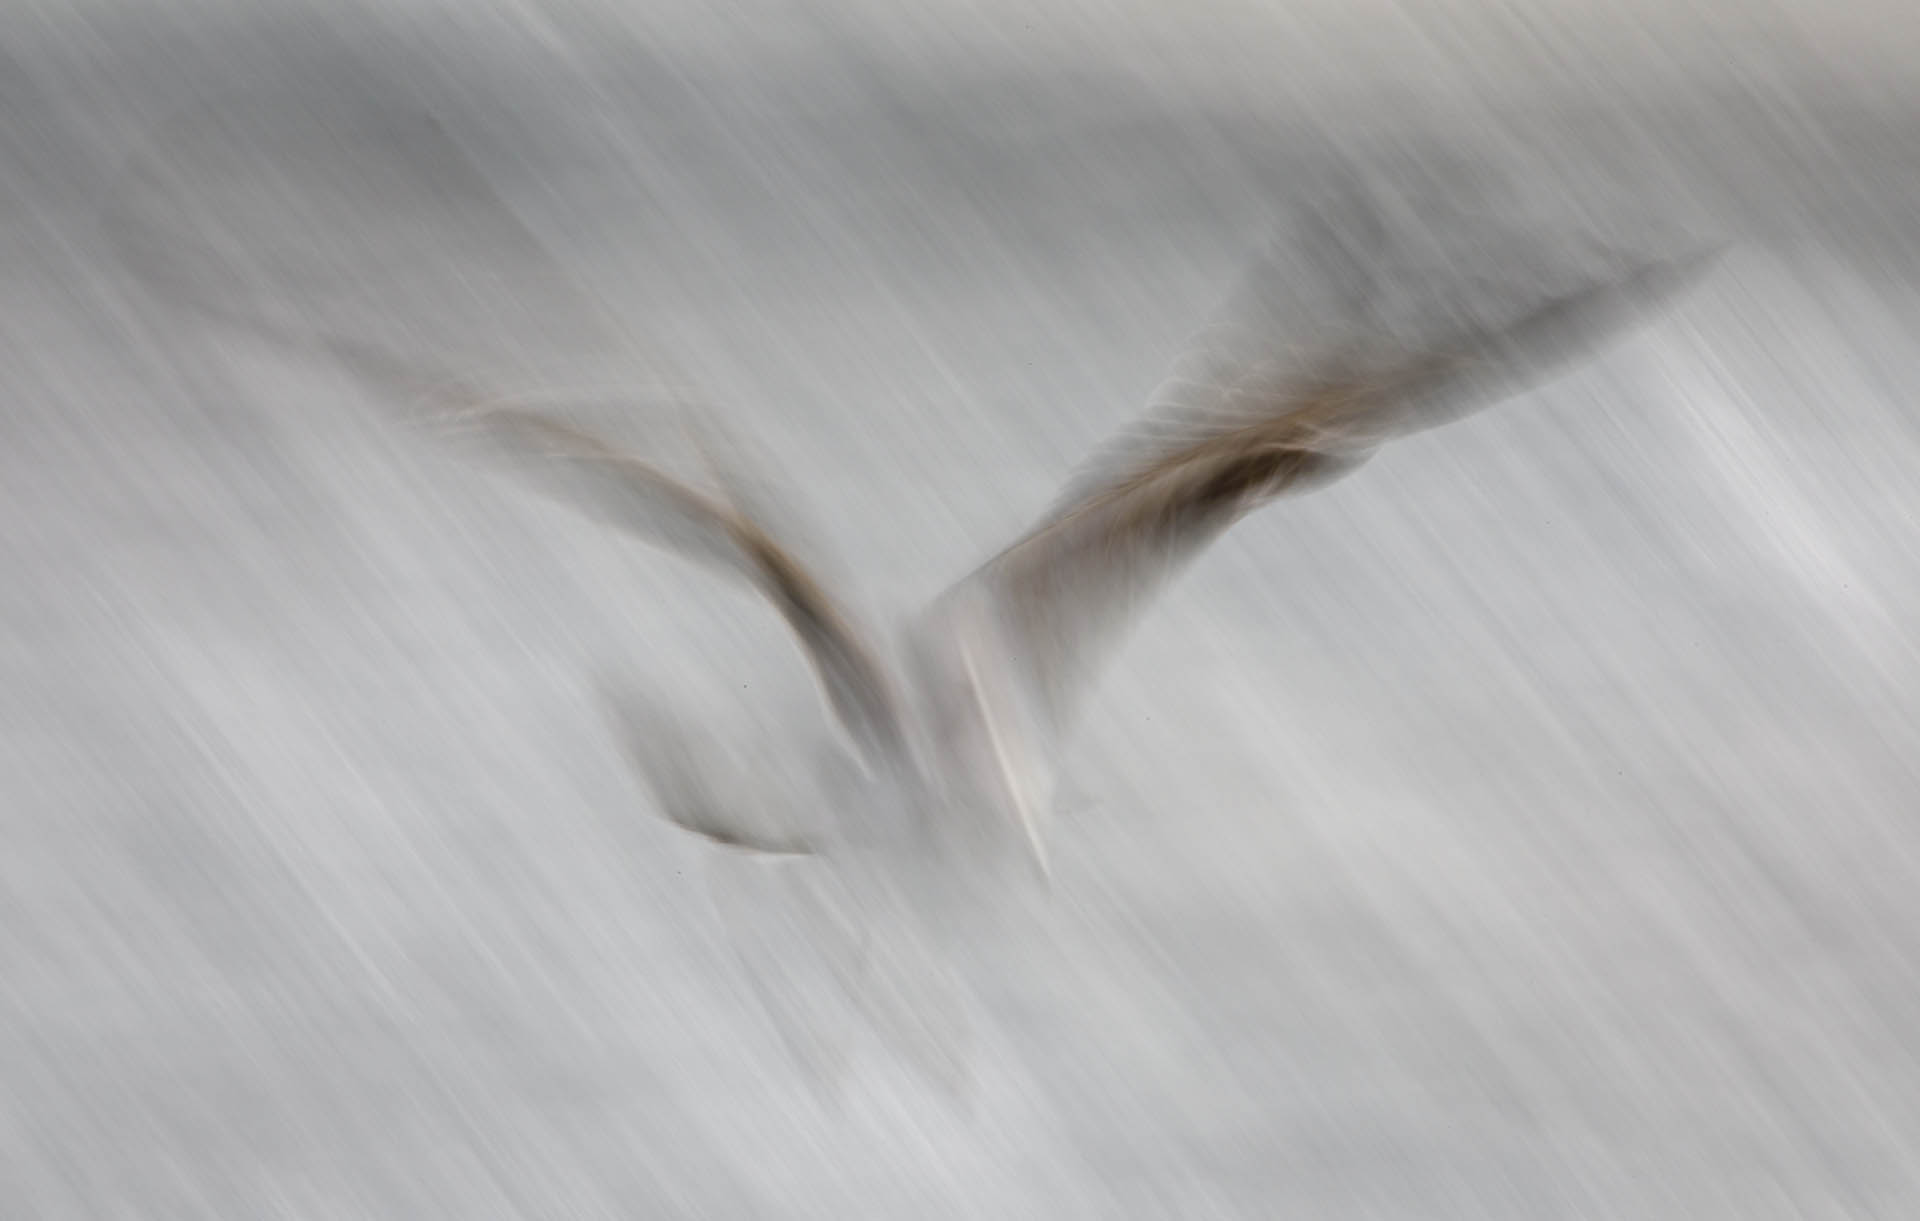 A gull diving headfirst into the water